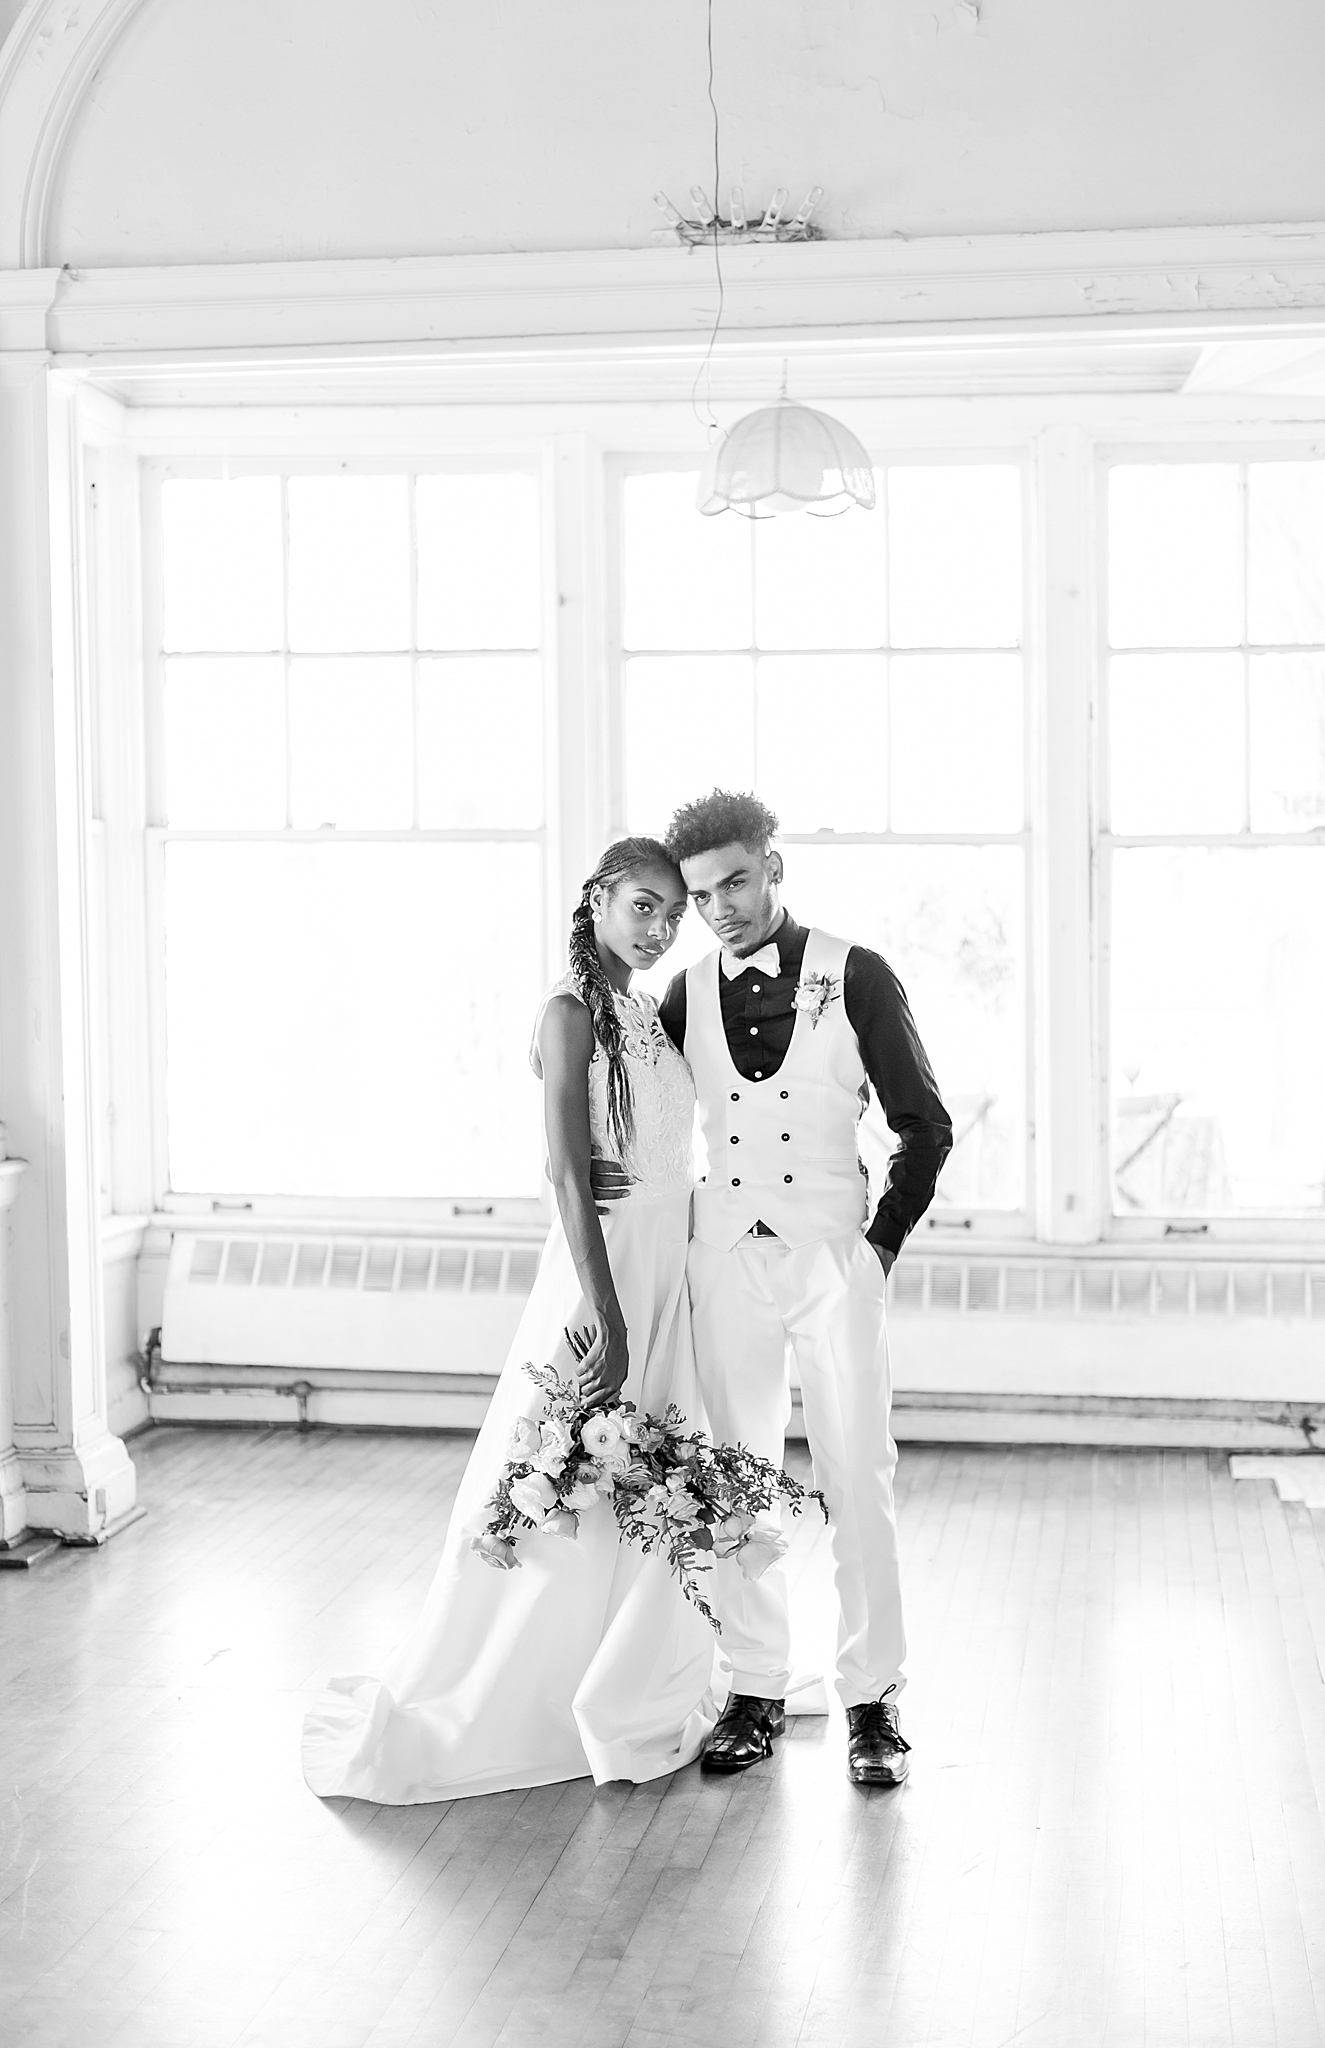 intimate-elopement-wedding-photography-at-belle-isle-boat-house-detroit-mi-by-courtney-carolyn-photography_0027.jpg